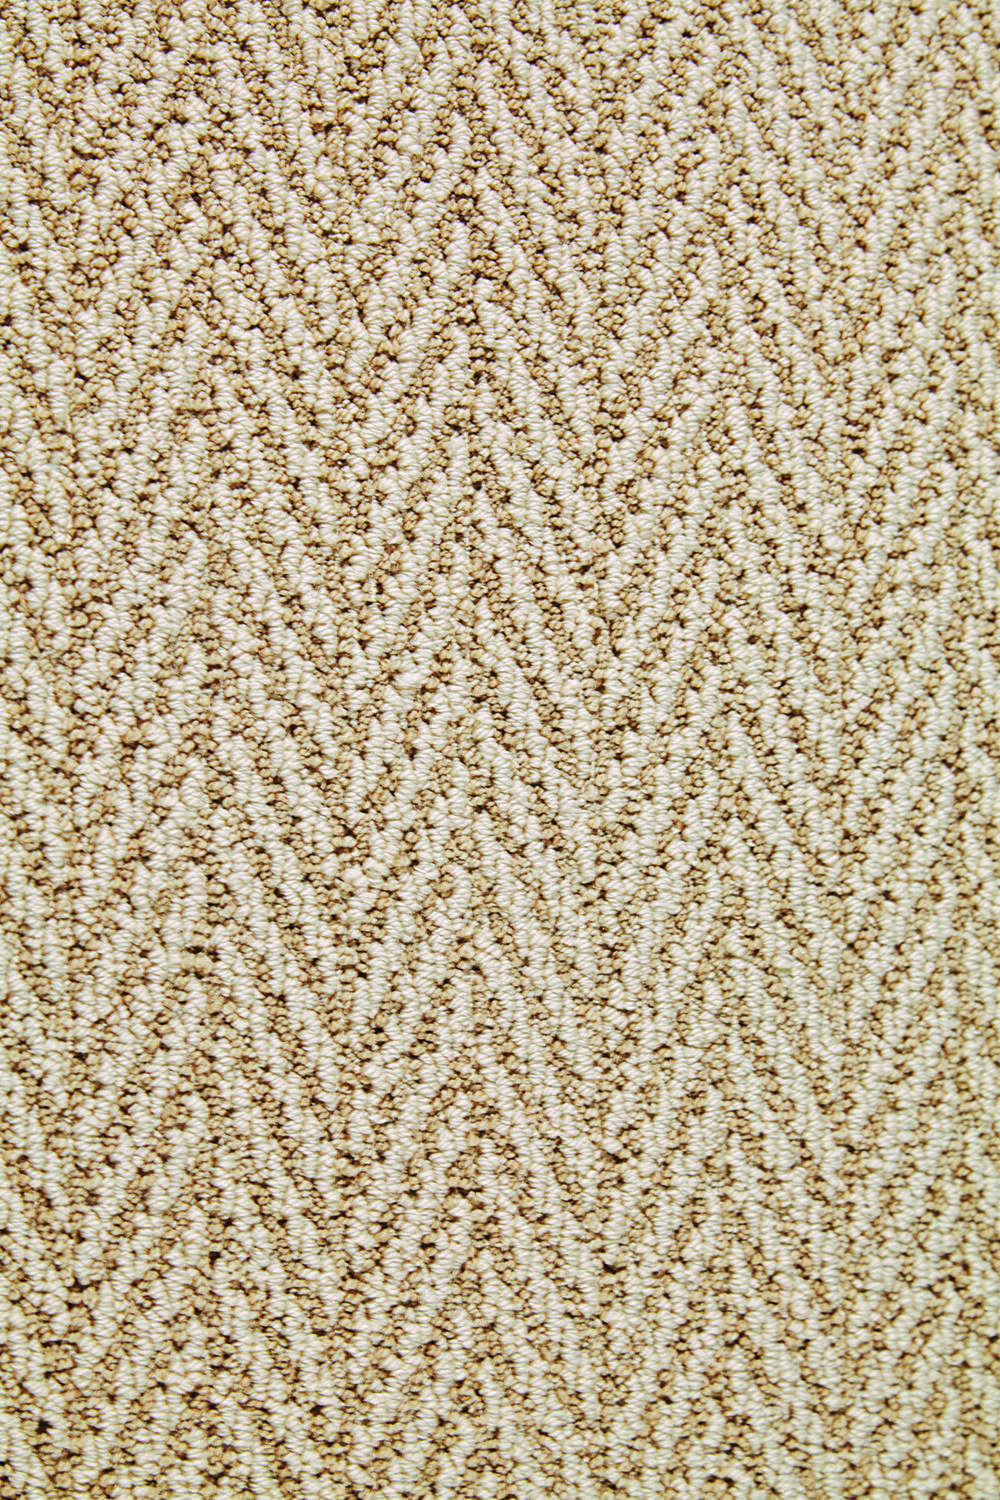 Pin On Only Natural Carpet Inspired By Natural Handcrafted Materials